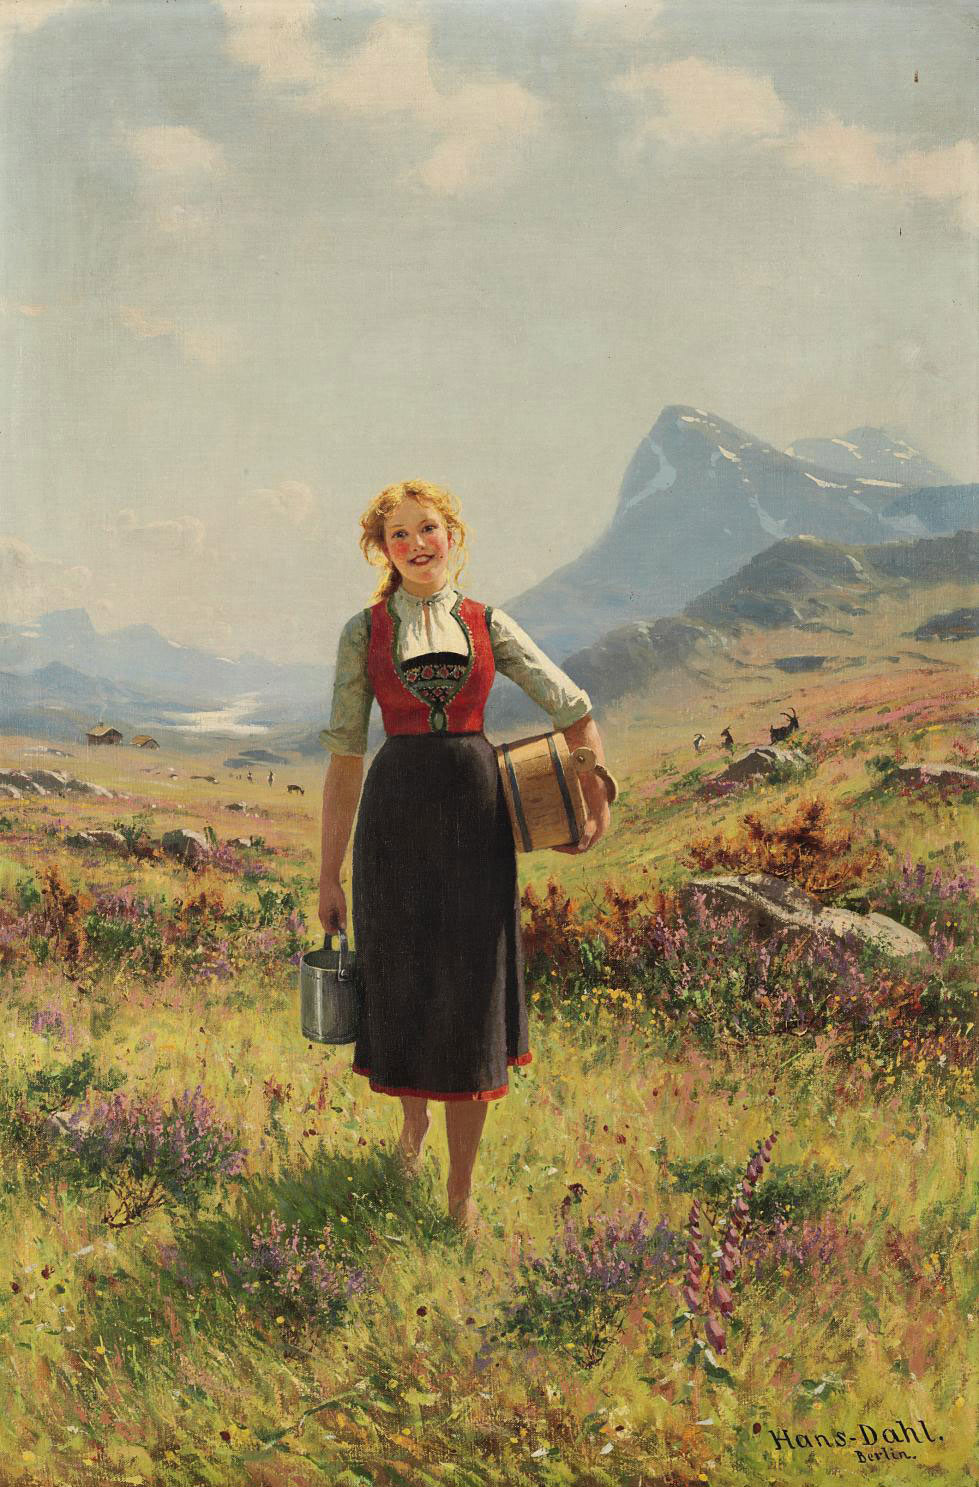 https://www.christies.com/img/LotImages/2010/CSK/2010_CSK_05494_3132_000(hans_dahl_summer_in_the_mountains_norway).jpg